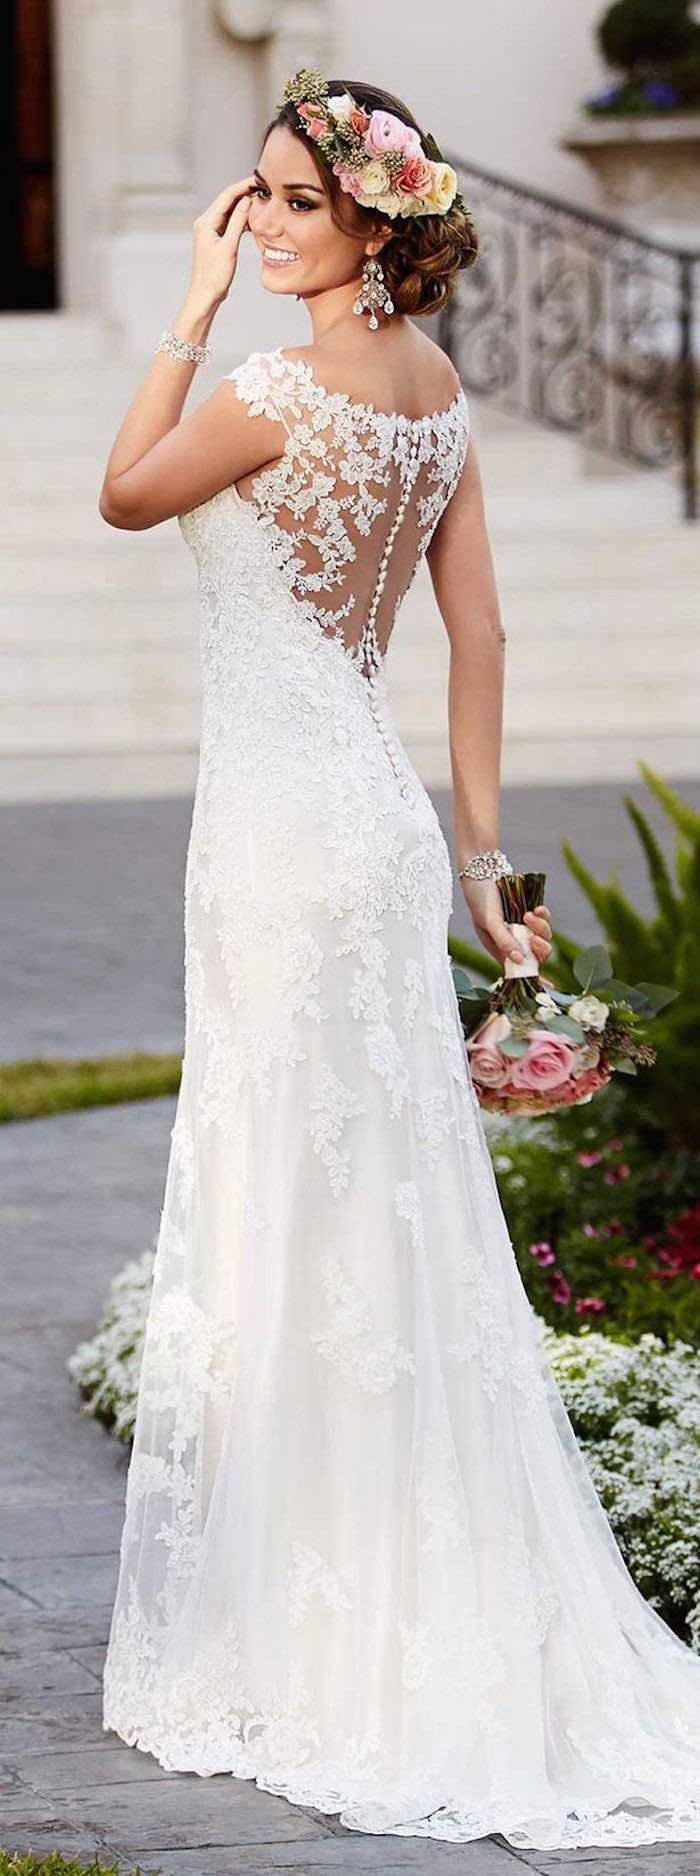 Unique wedding dress alternative wedding dress alternate wedding - Gorgeous Stella York Lace Wedding Dress Looks Amazing For This Summer Floral Crown Photo Via